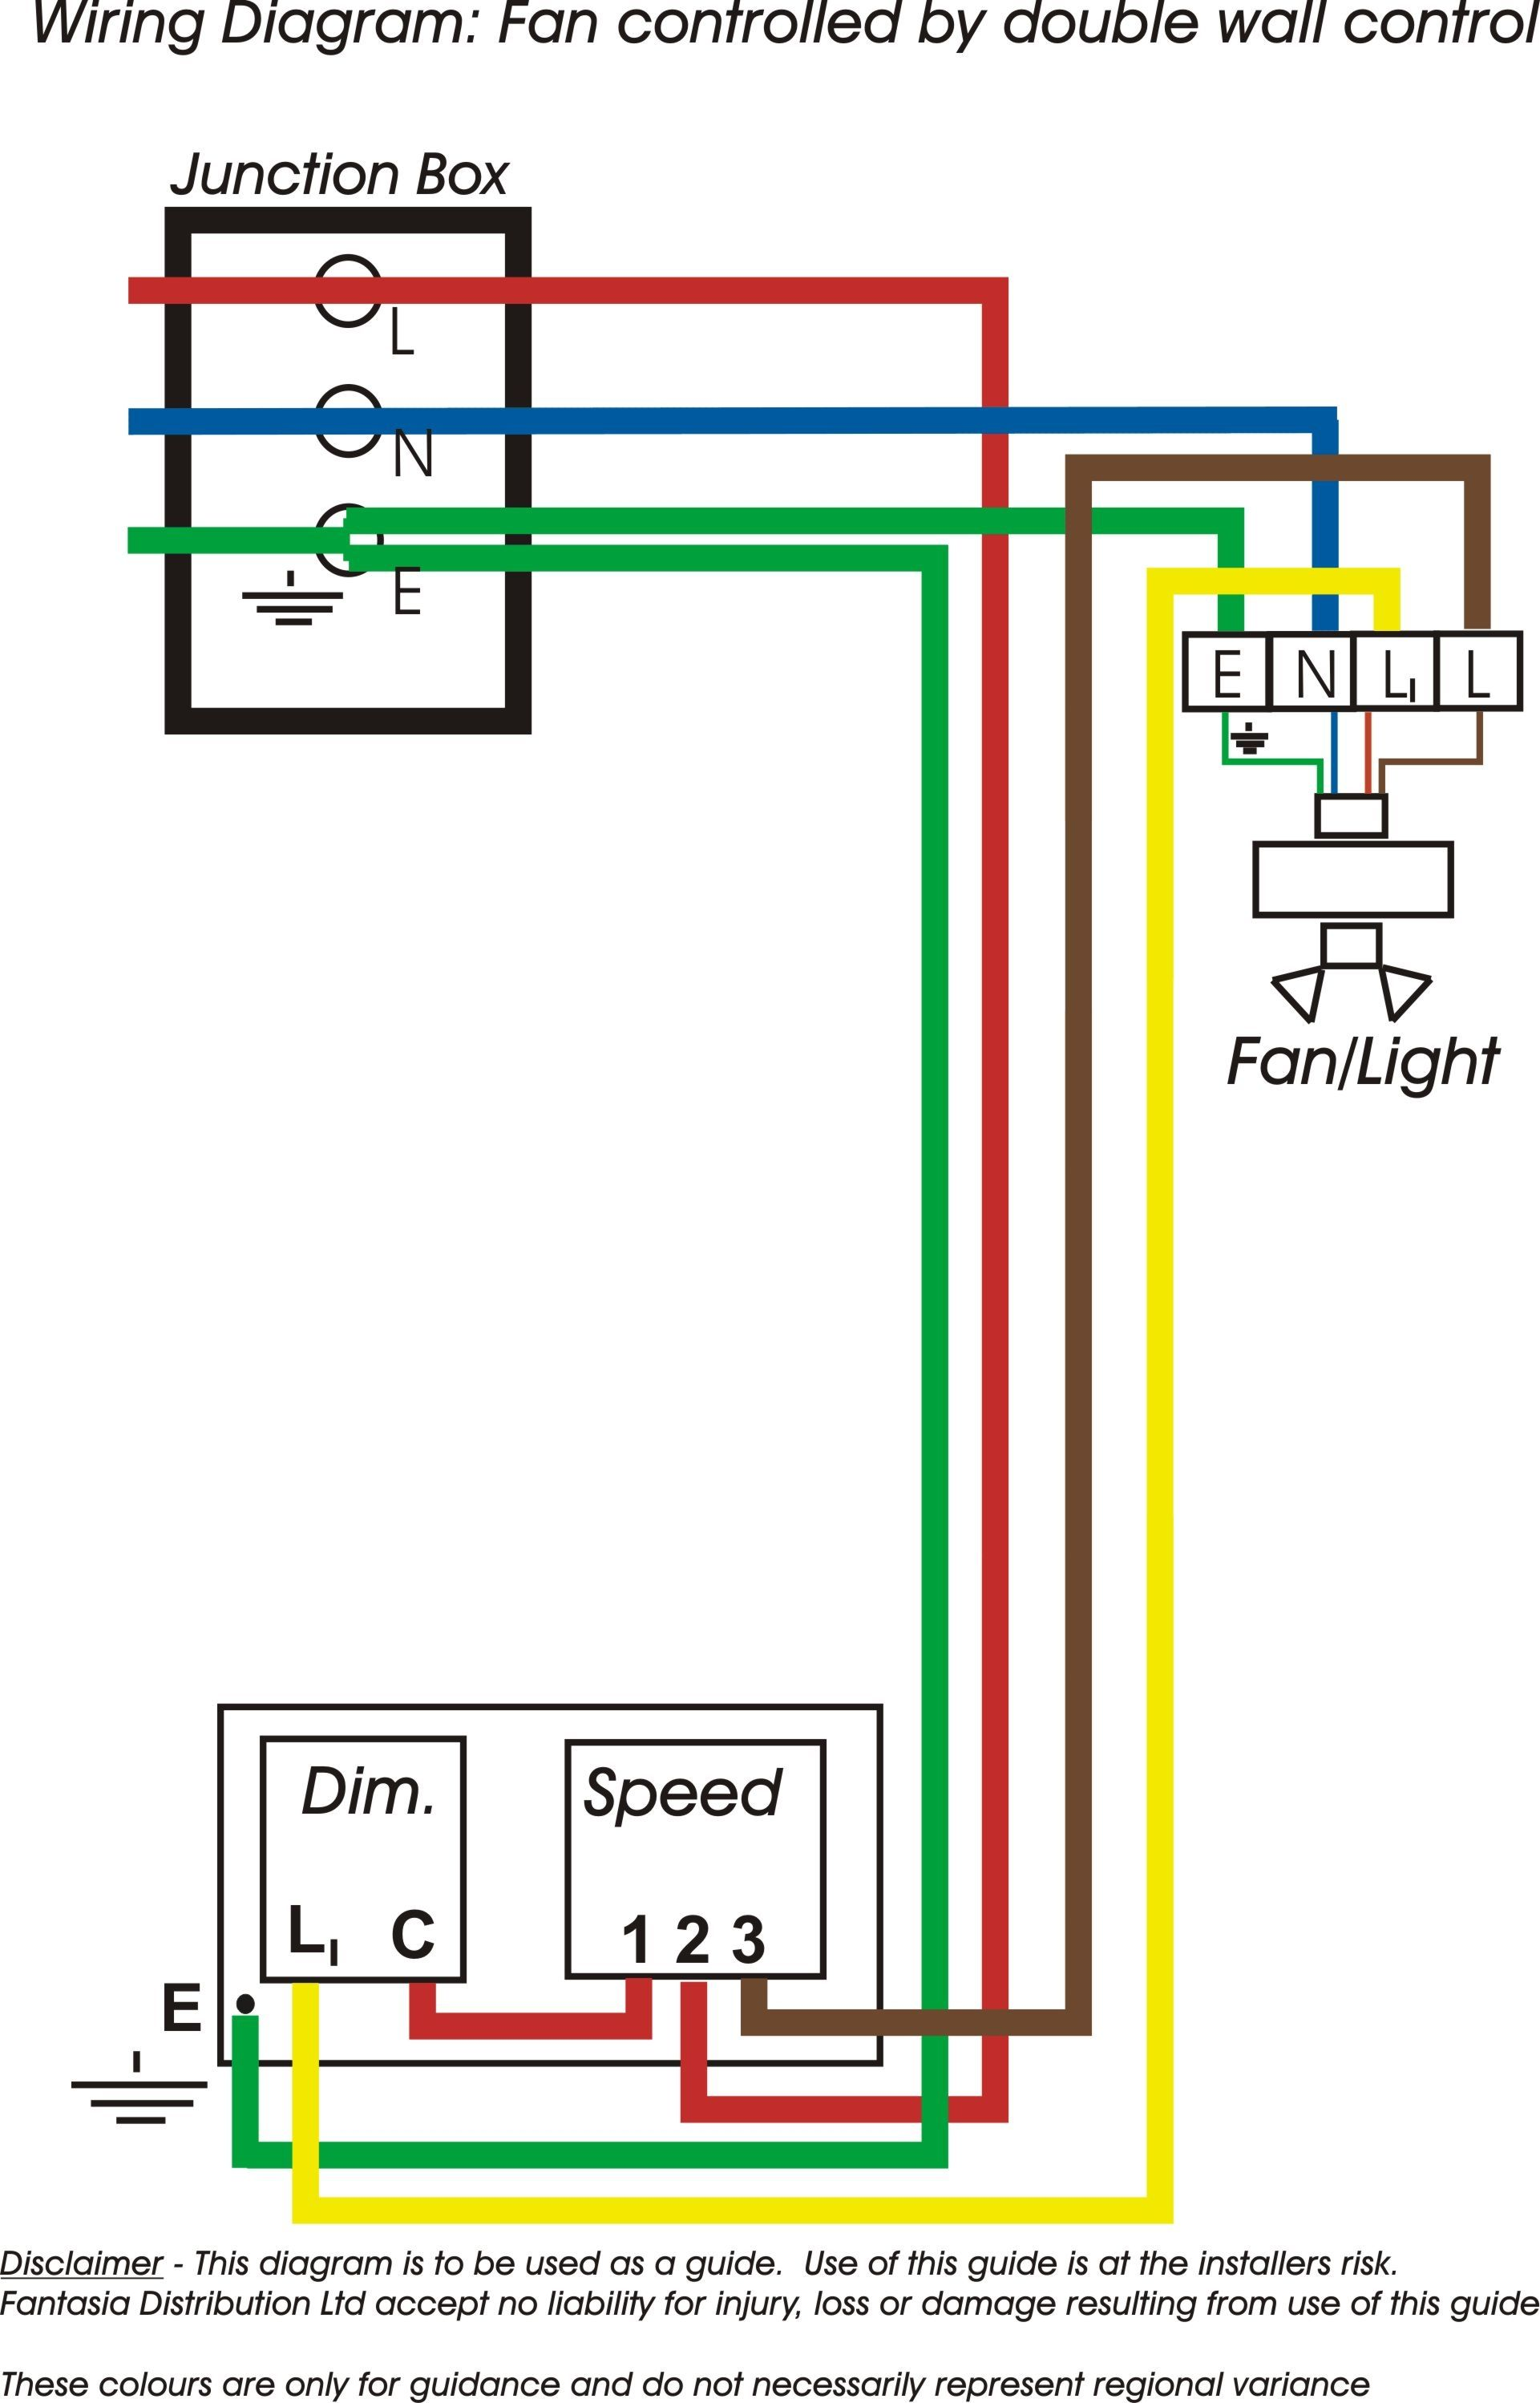 Hunter Universal Fan Remote Wiring (With images) Ceiling